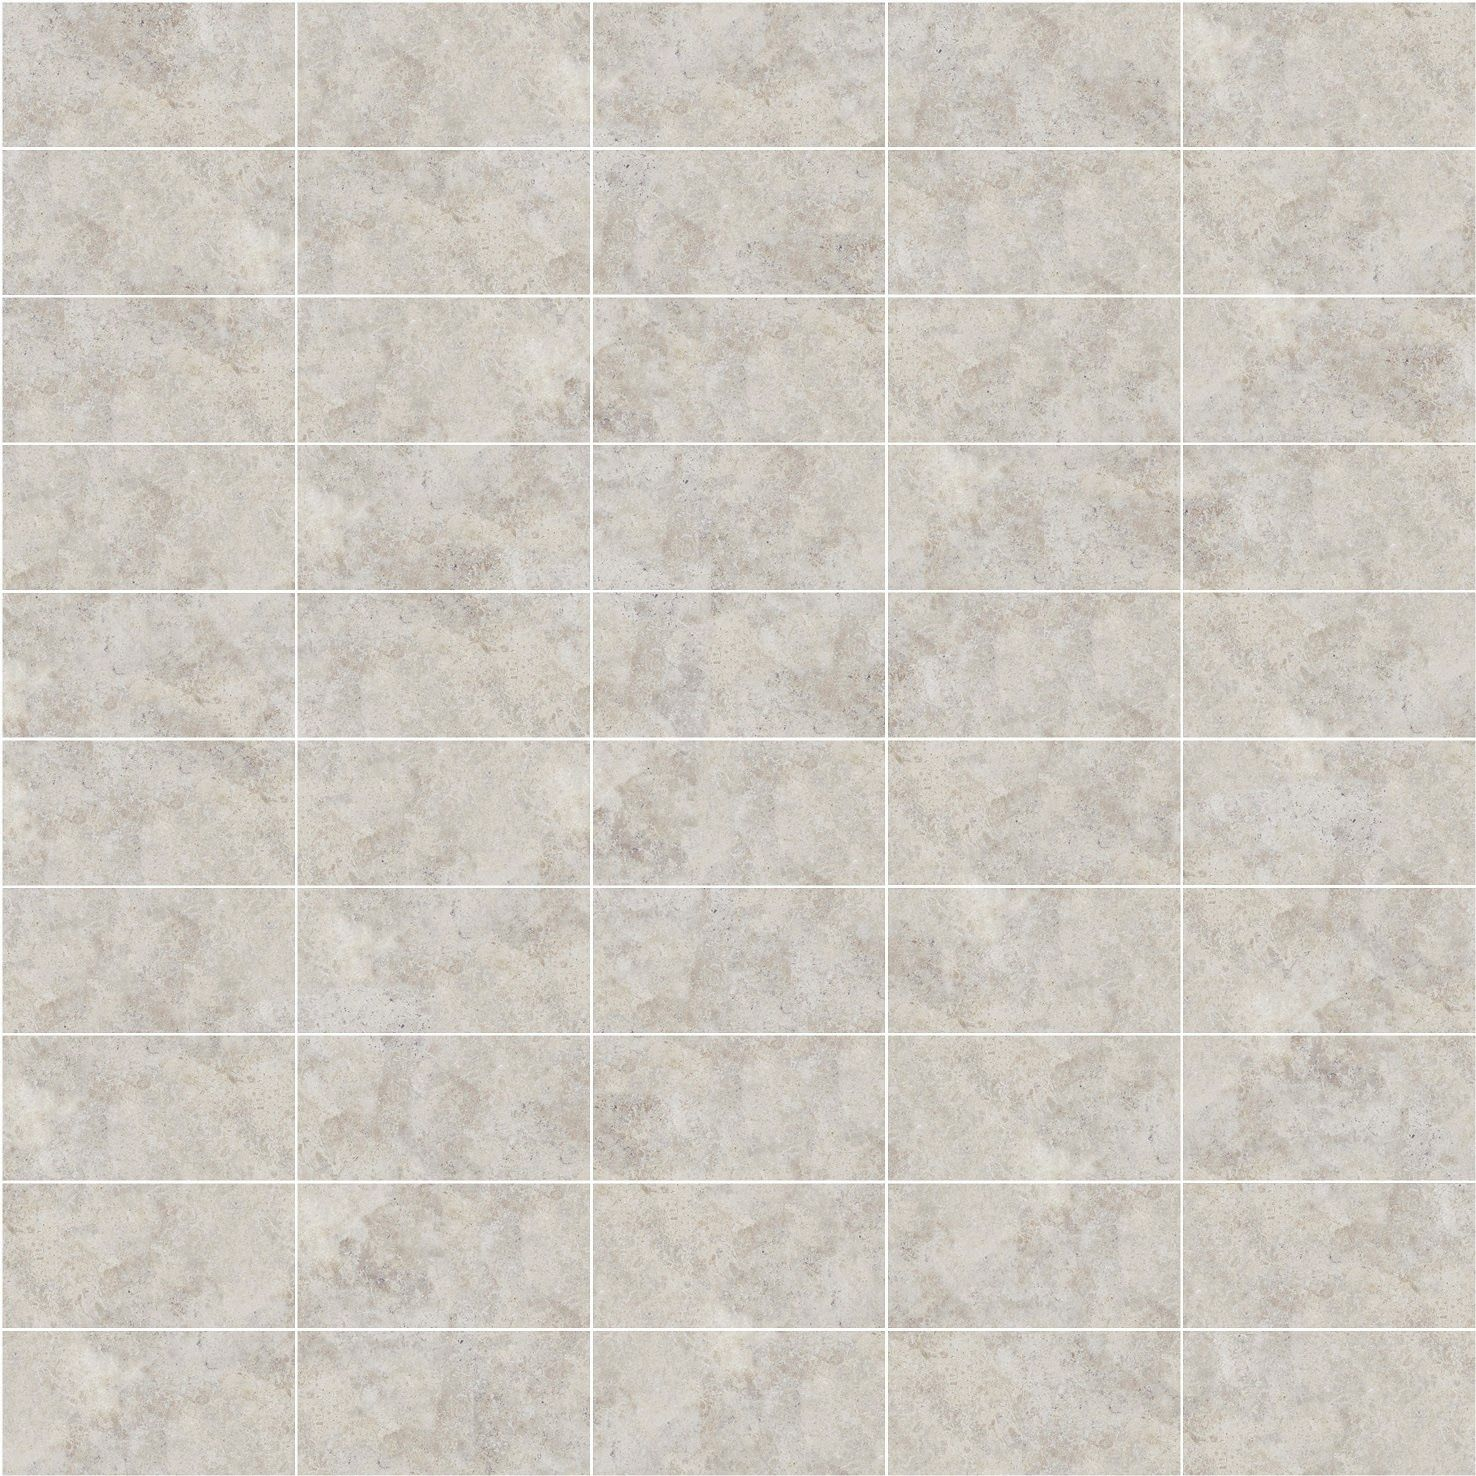 tileable tile texture. Contemporary Tile Texture Seamless Marble Floor Tile With Tileable Tile